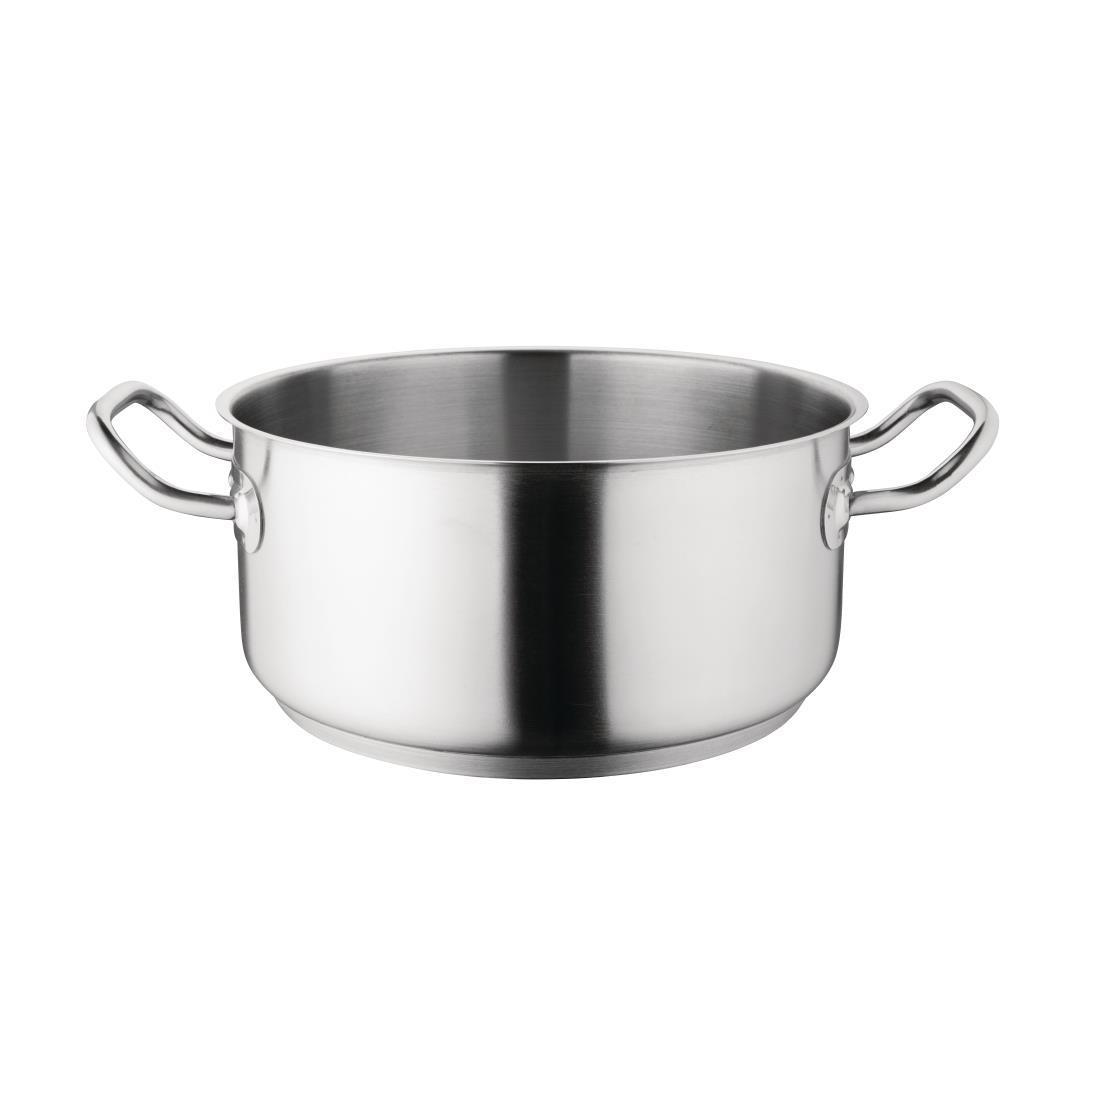 Vogue Casserole Pan 4.5Ltr - T149